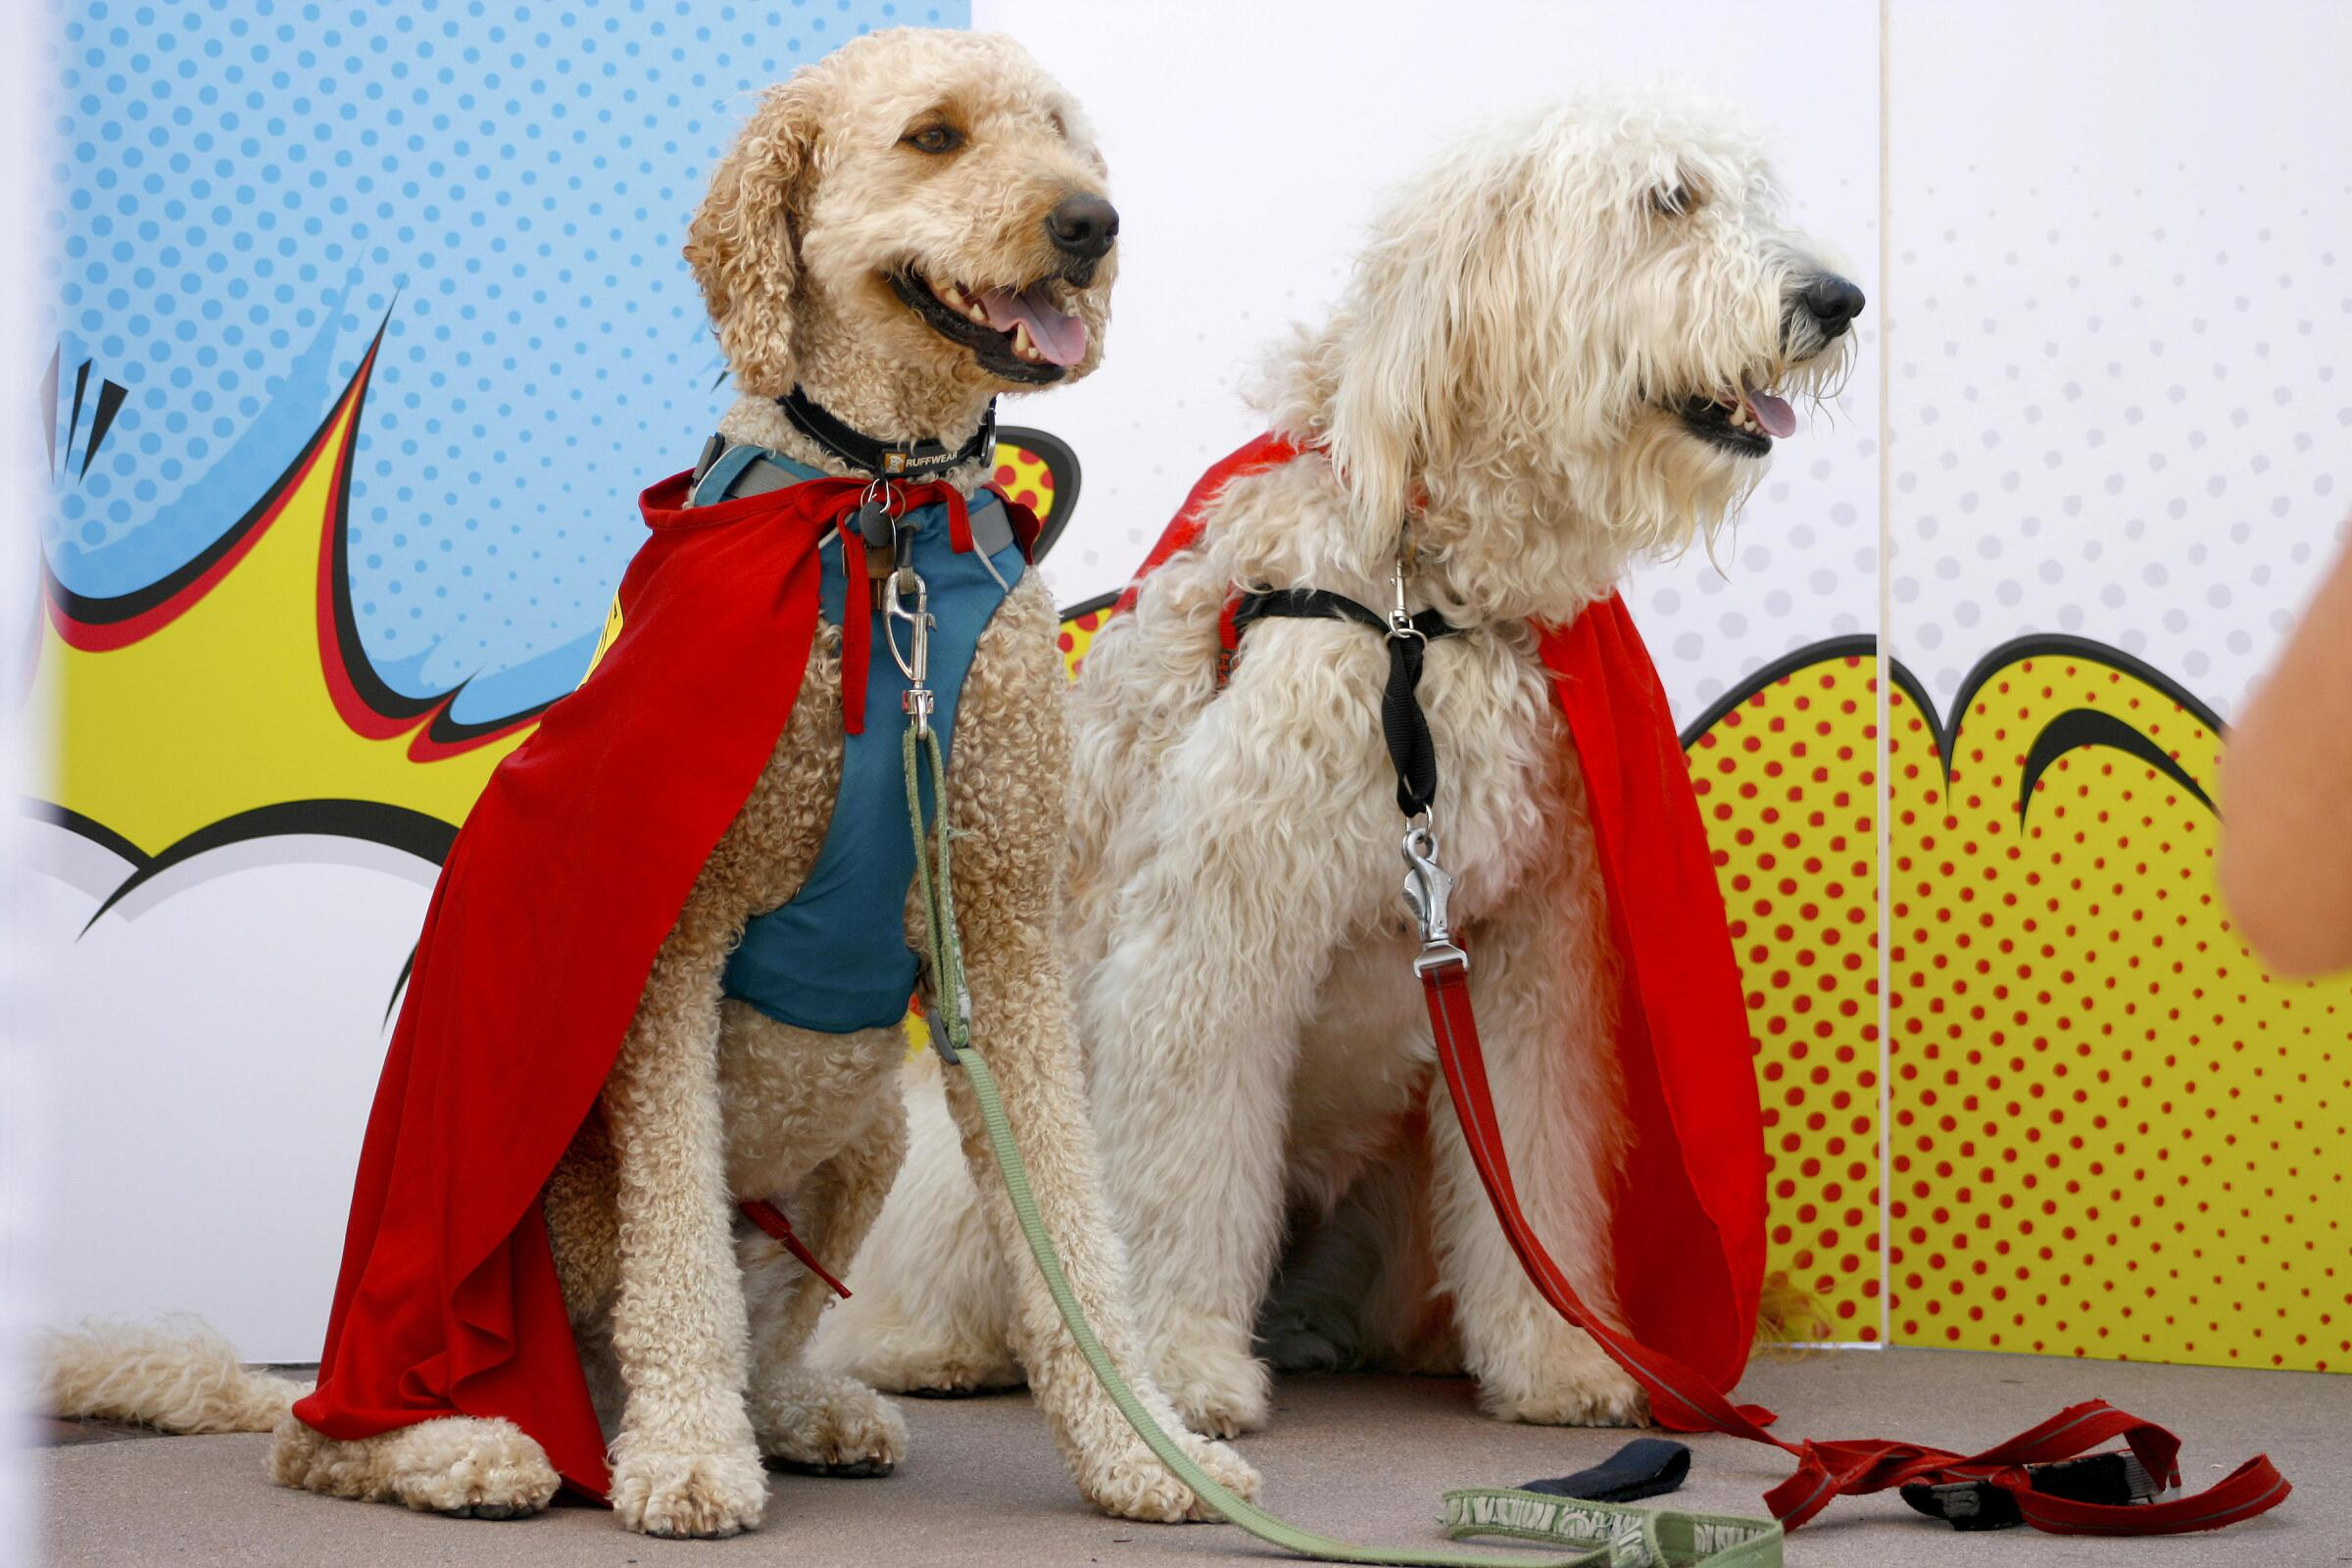 Two dogs dressed up as superheroes at PAWmicon